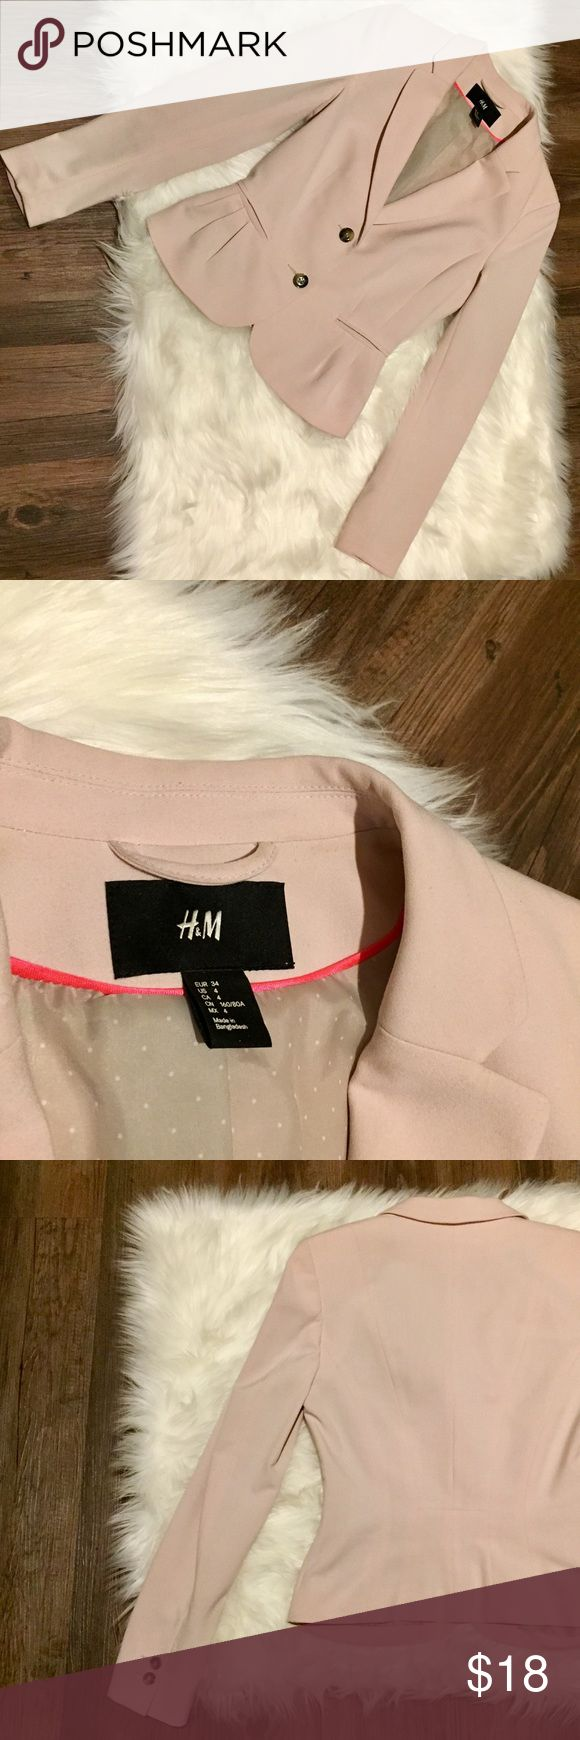 H&M Light Pink Blazer w Tortoise Buttons Light pink blazer, size 4. Gently used, perfect condition. White polka dots inside on tan lining. Long sleeves (full length. Runs true to size. H&M Jackets & Coats Blazers